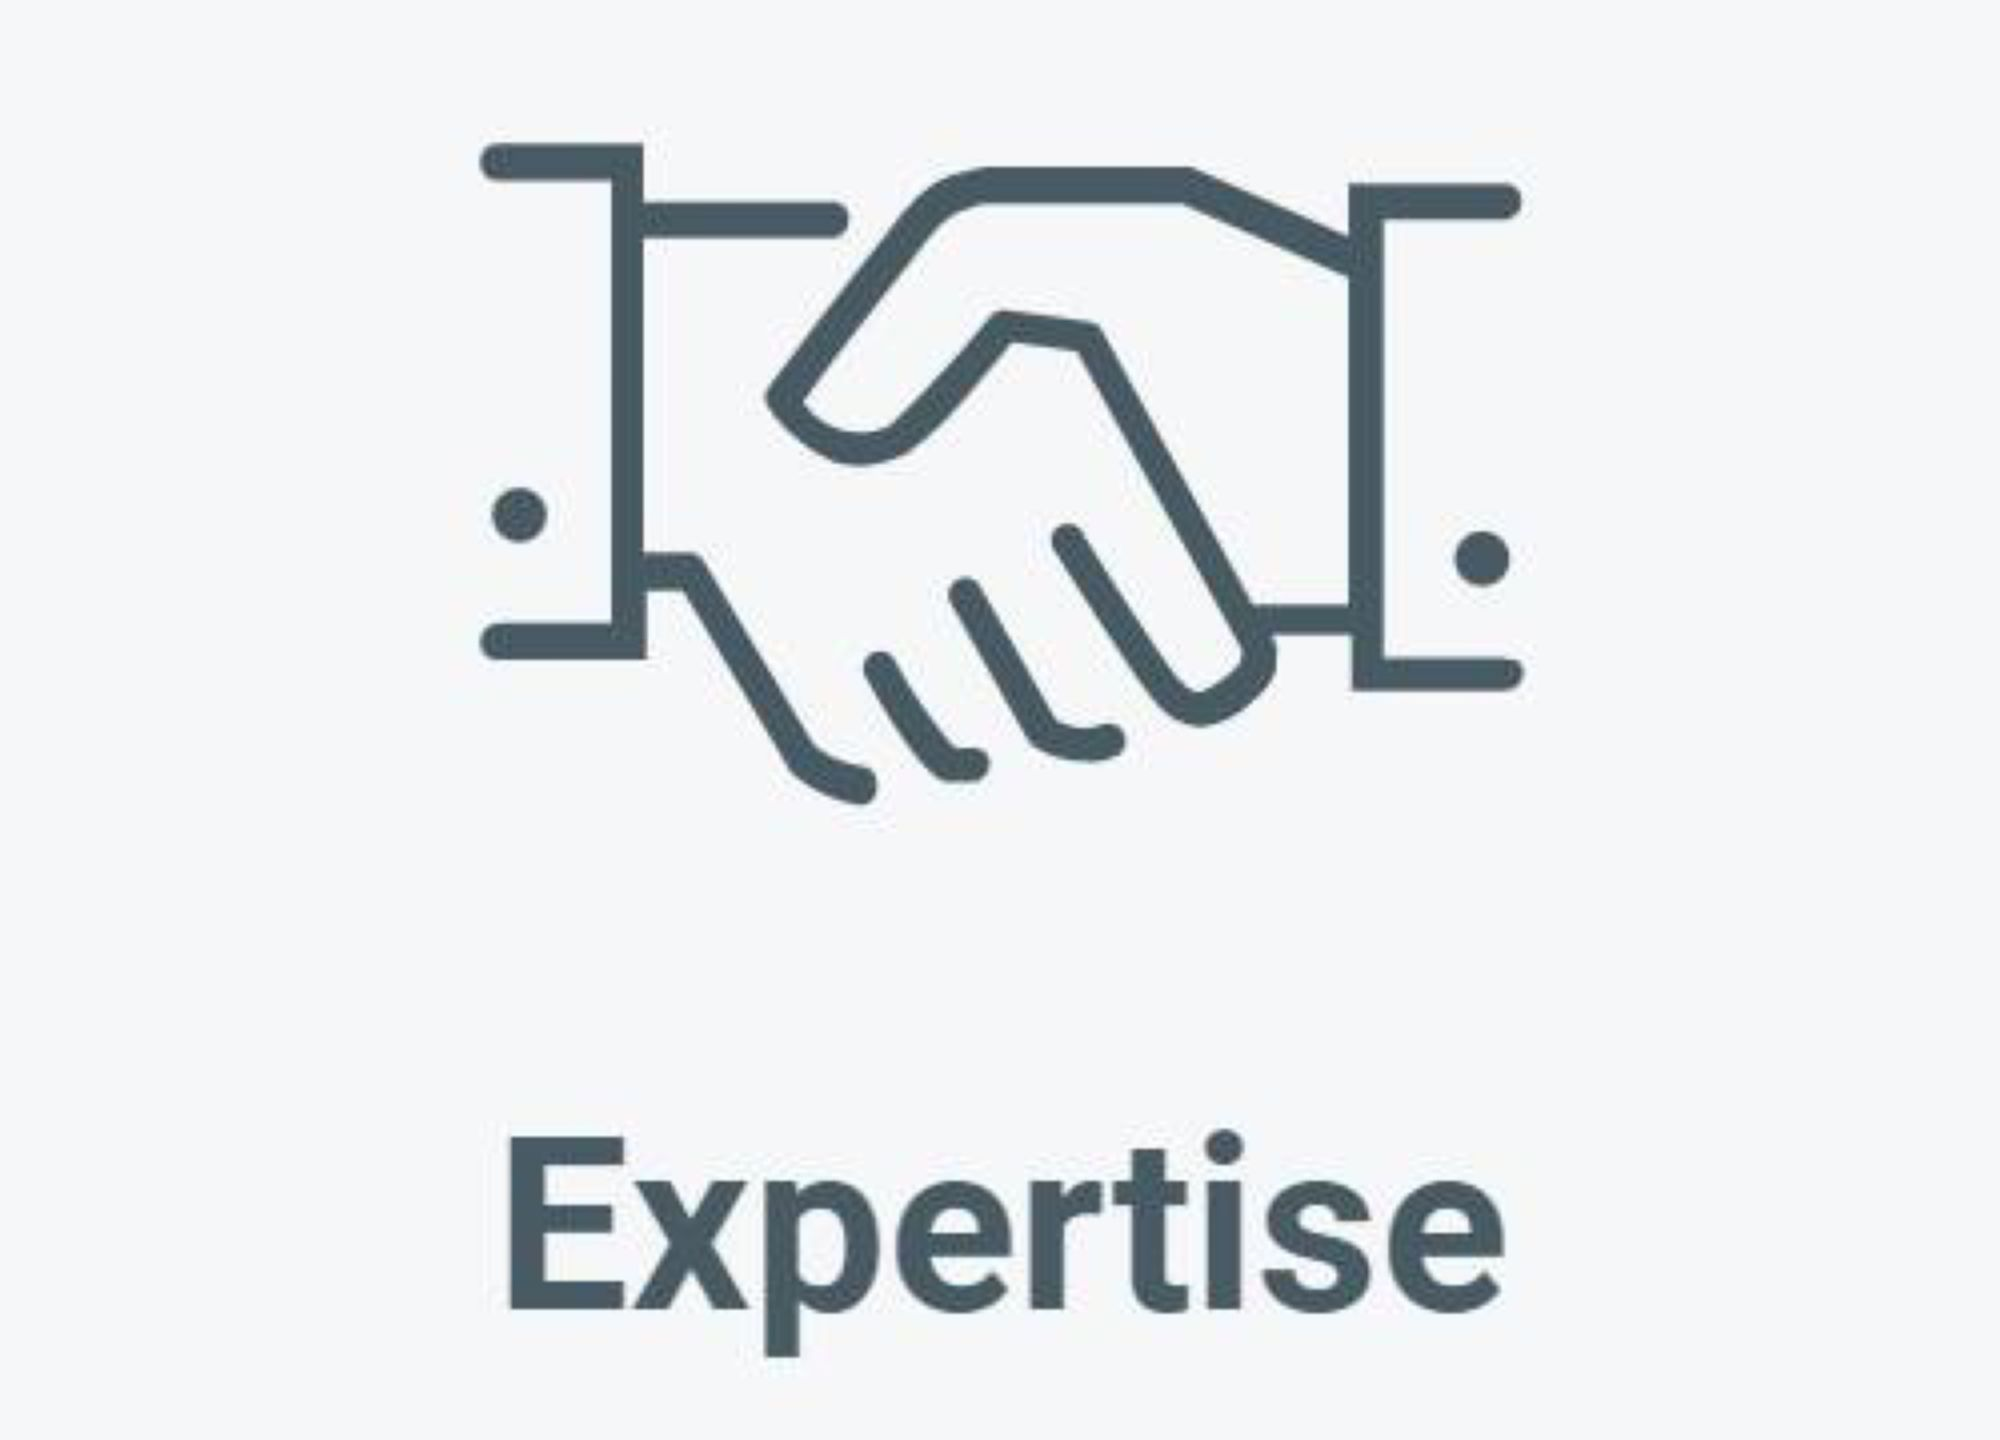 validation-expertise-icon.jpg